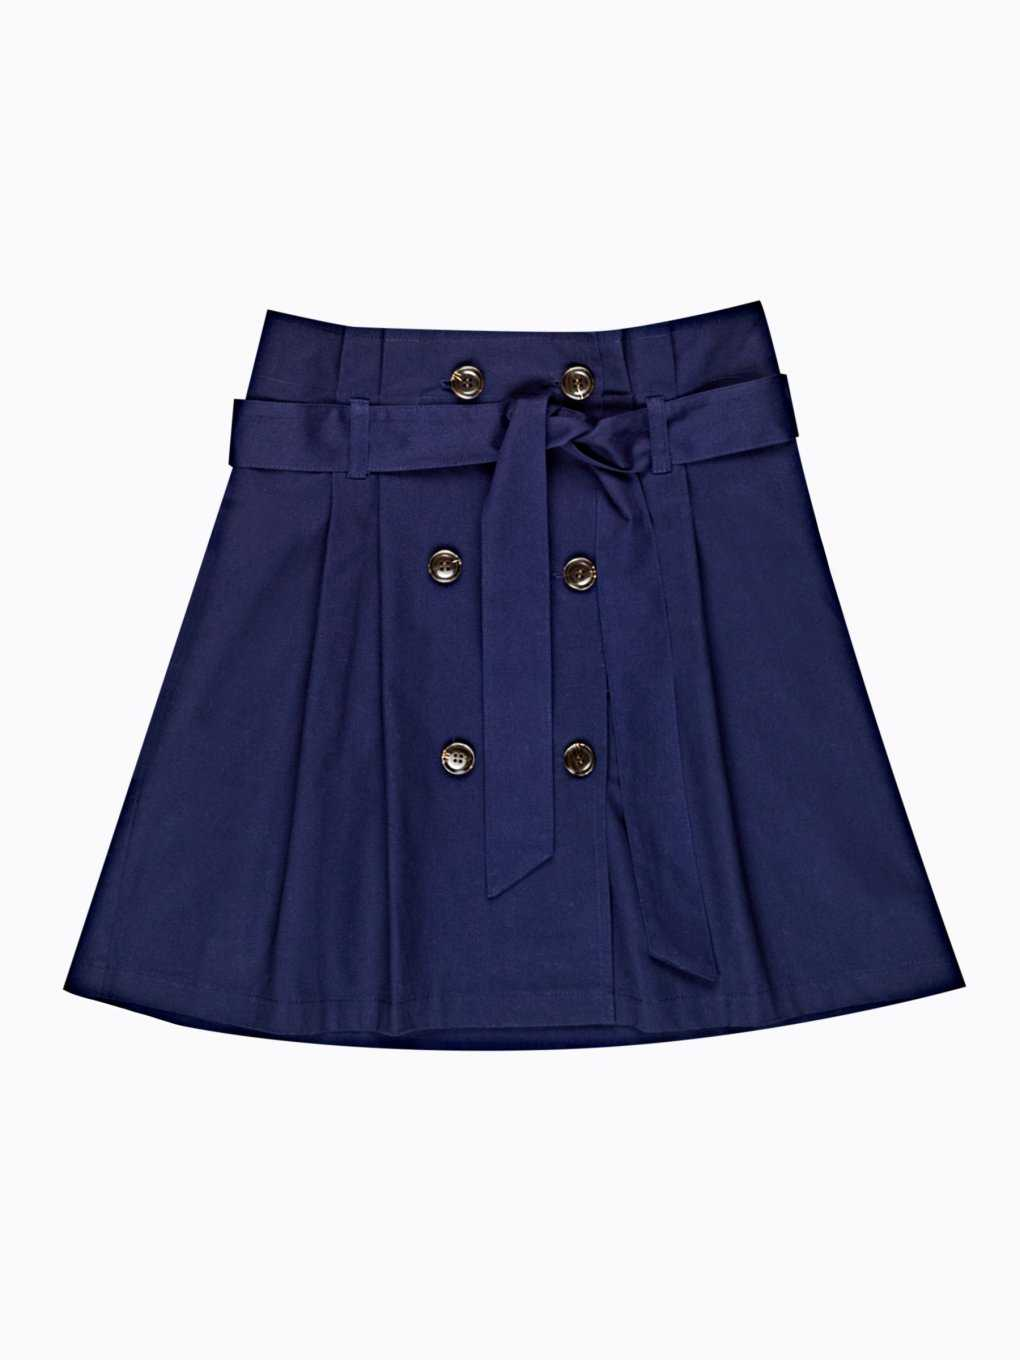 Paper-bag skirt with buttons